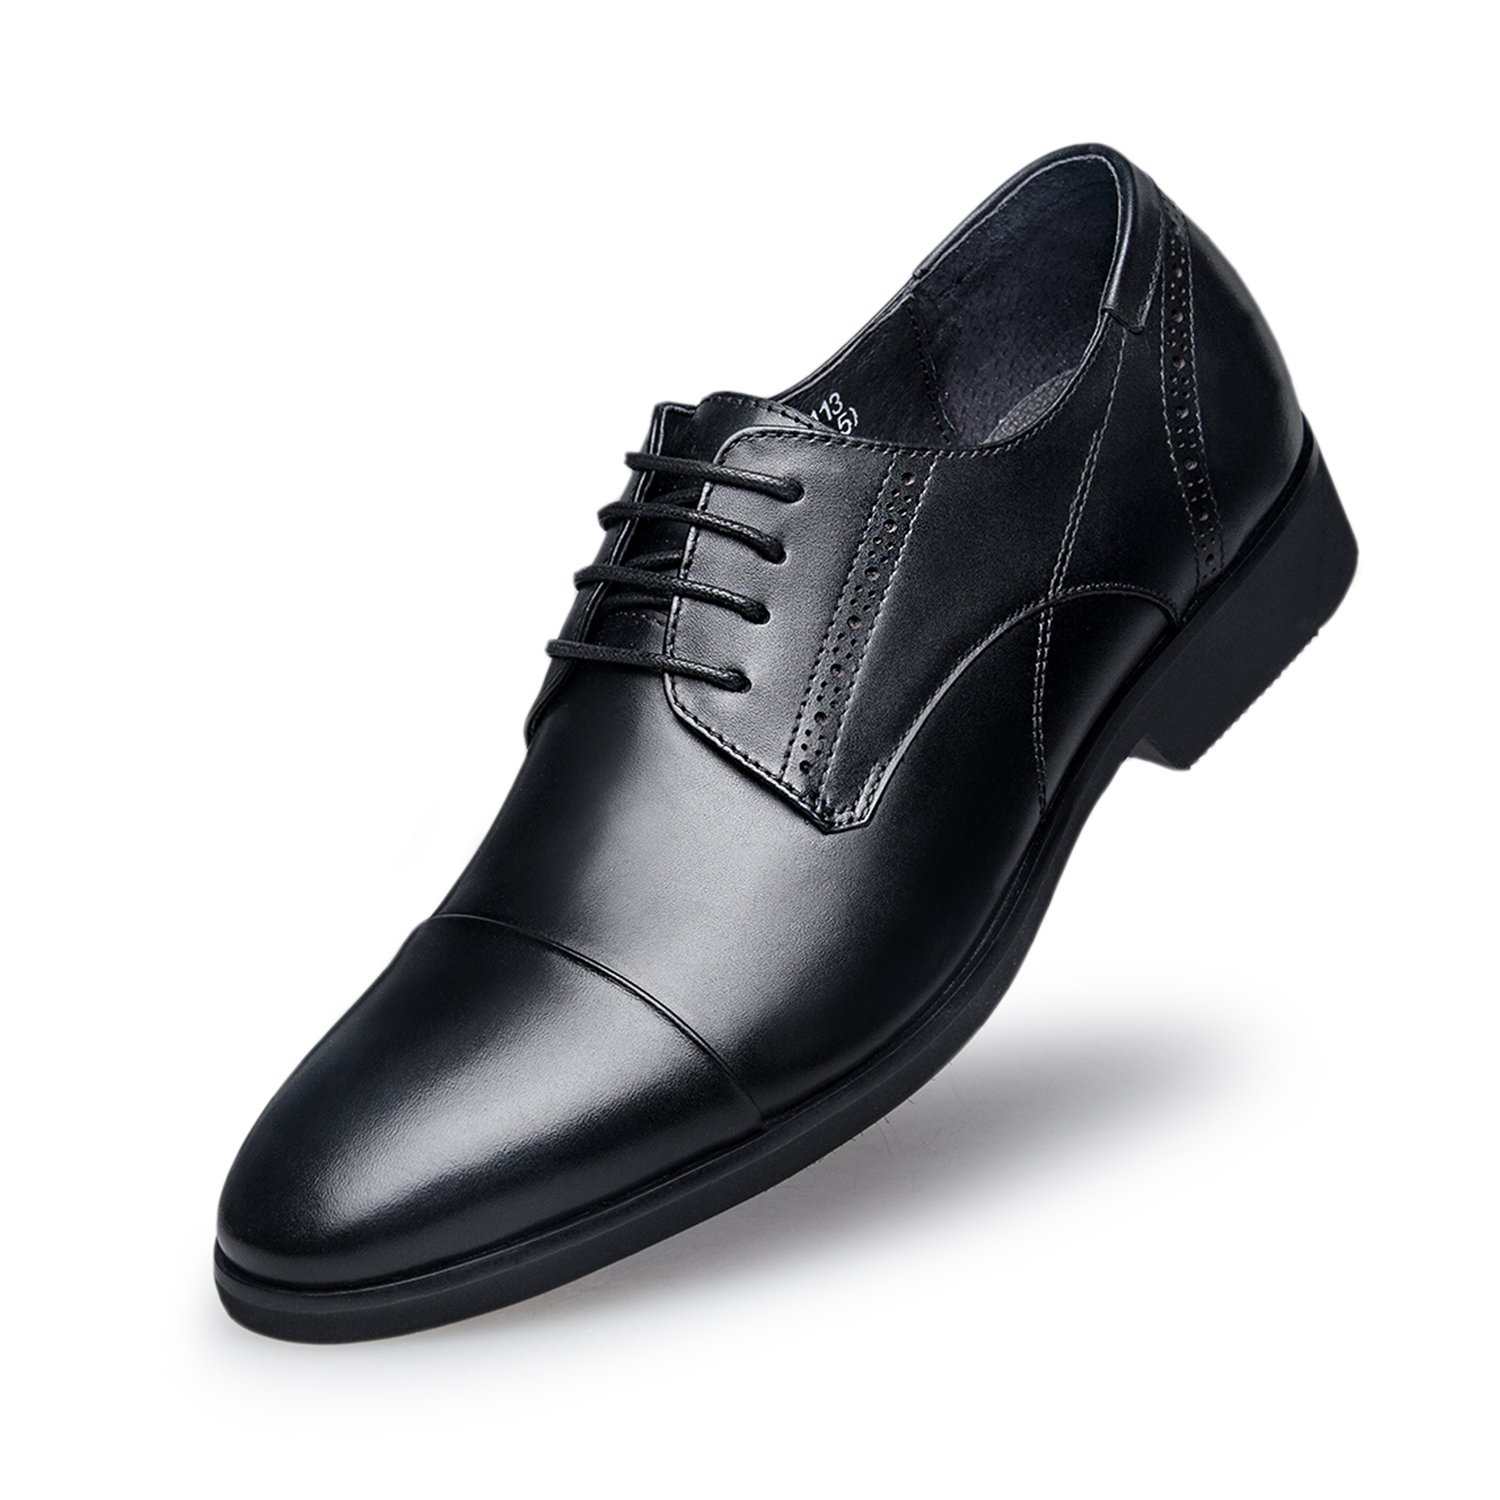 ZRO Men's Modern Brogue Lace Up Cap-Toe Dress Oxfords Leather Shoes Black US 7